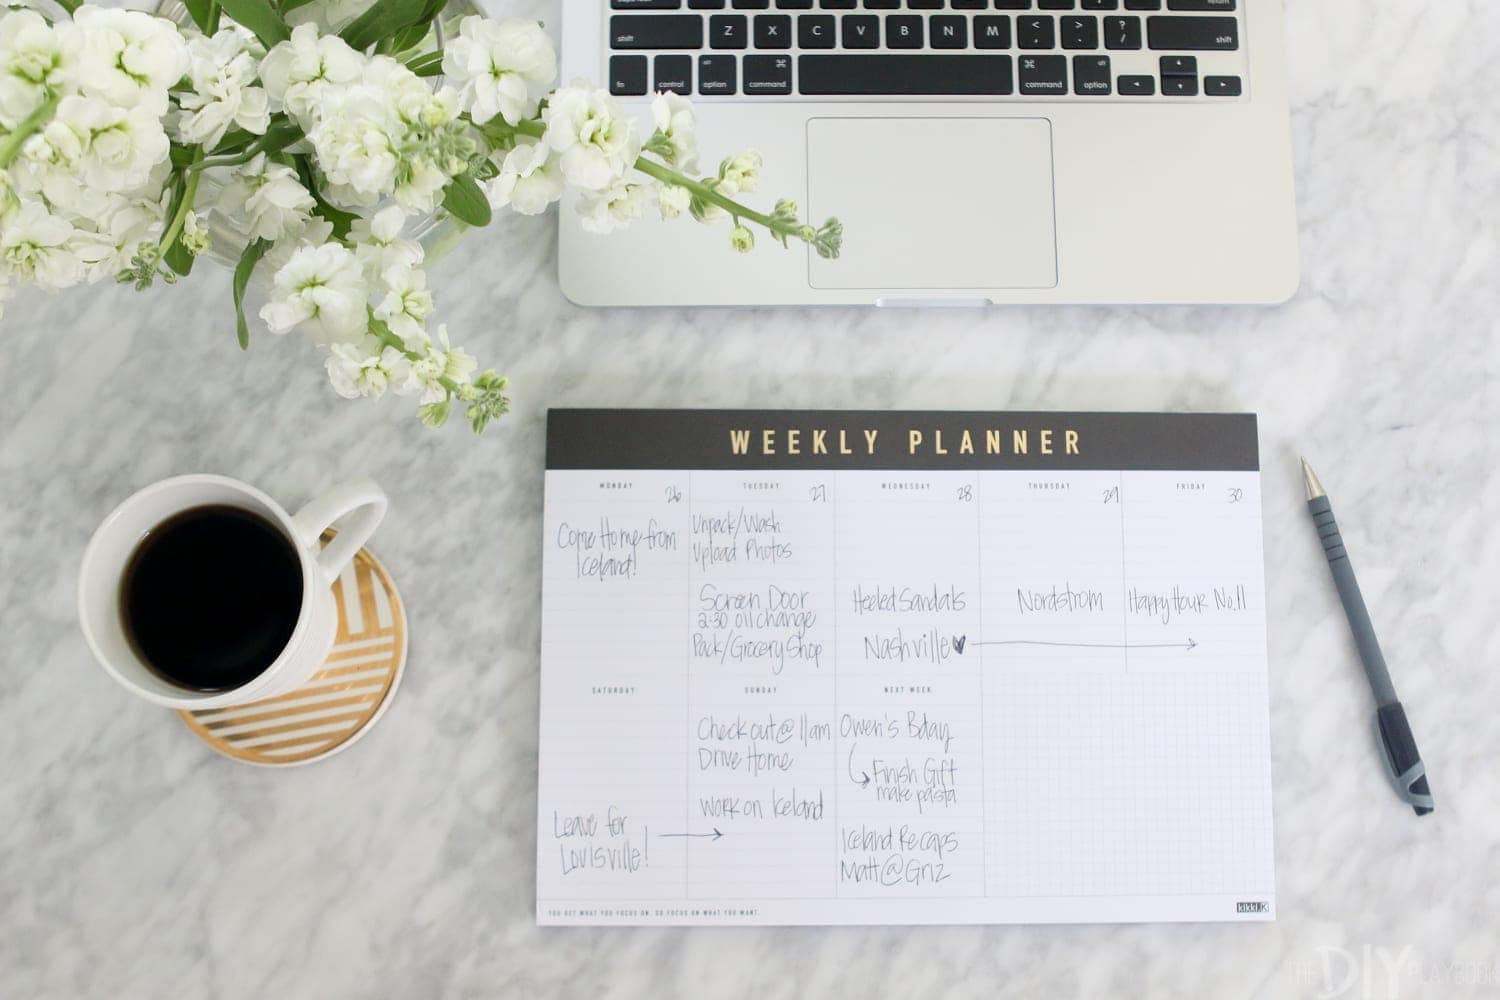 Love these white flowers and this weekly planner! Added both to my office space.